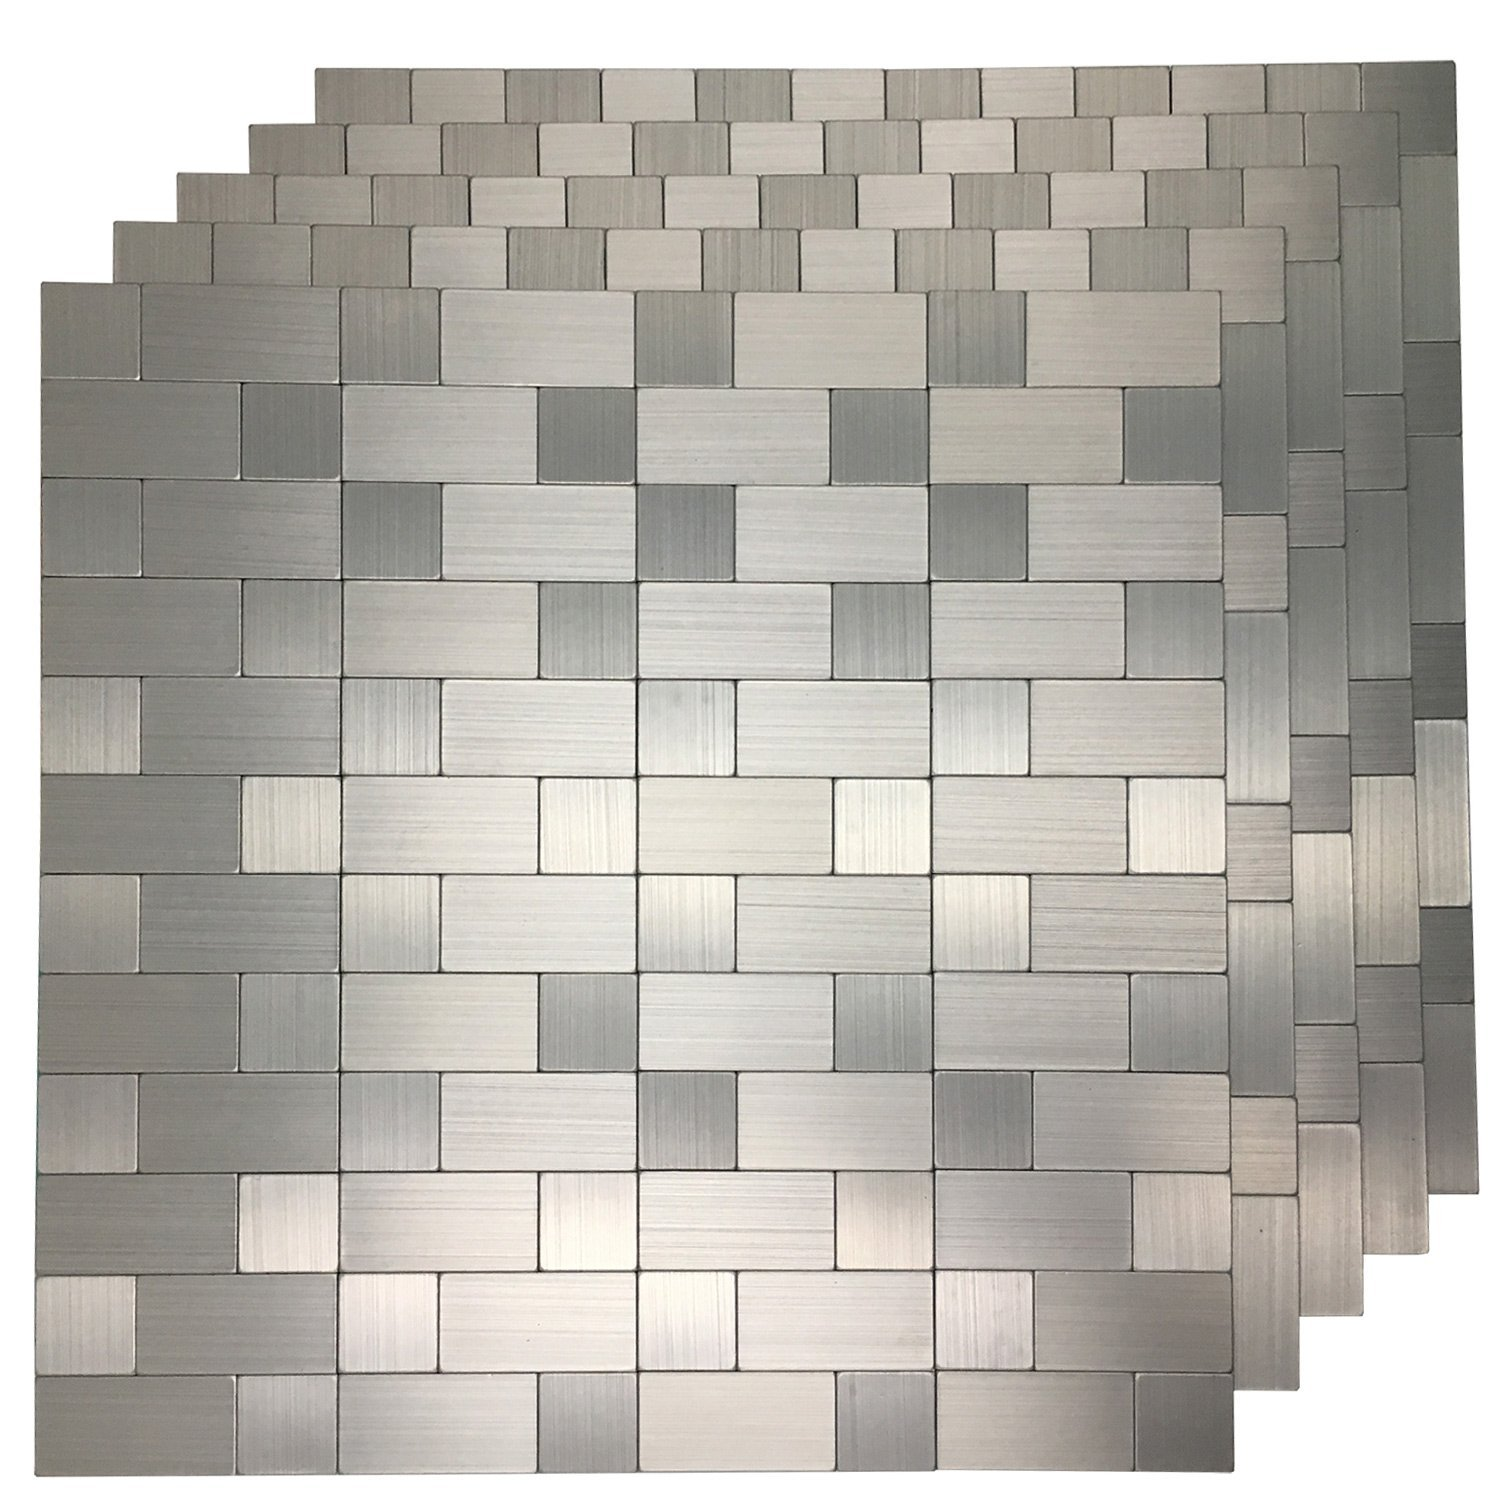 Art3d 5 Piece Peel and Stick Tile Metal Backsplash for Kitchen, Silver Aluminum Surface